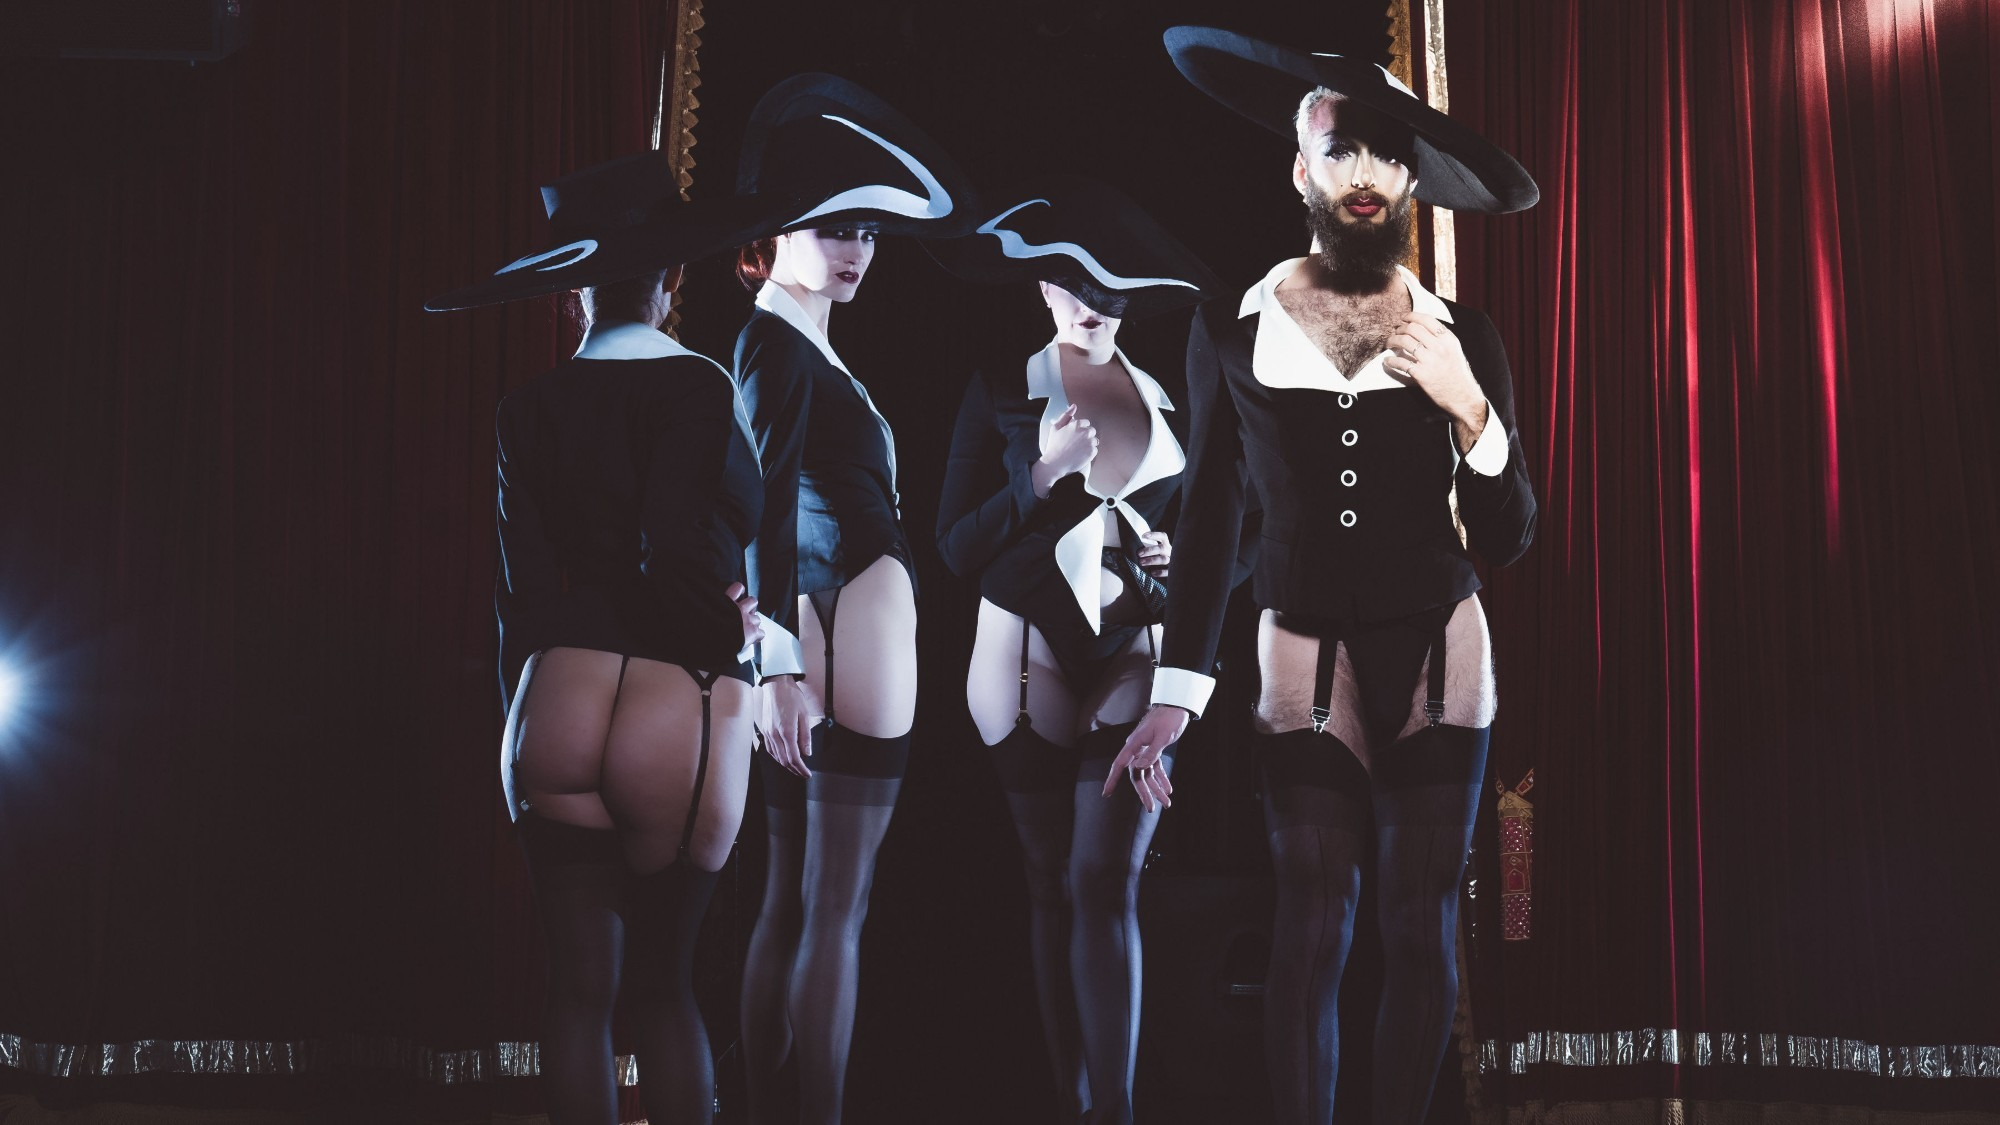 Four burlesque performers pose in black and white costumes with broad brimmed hats.